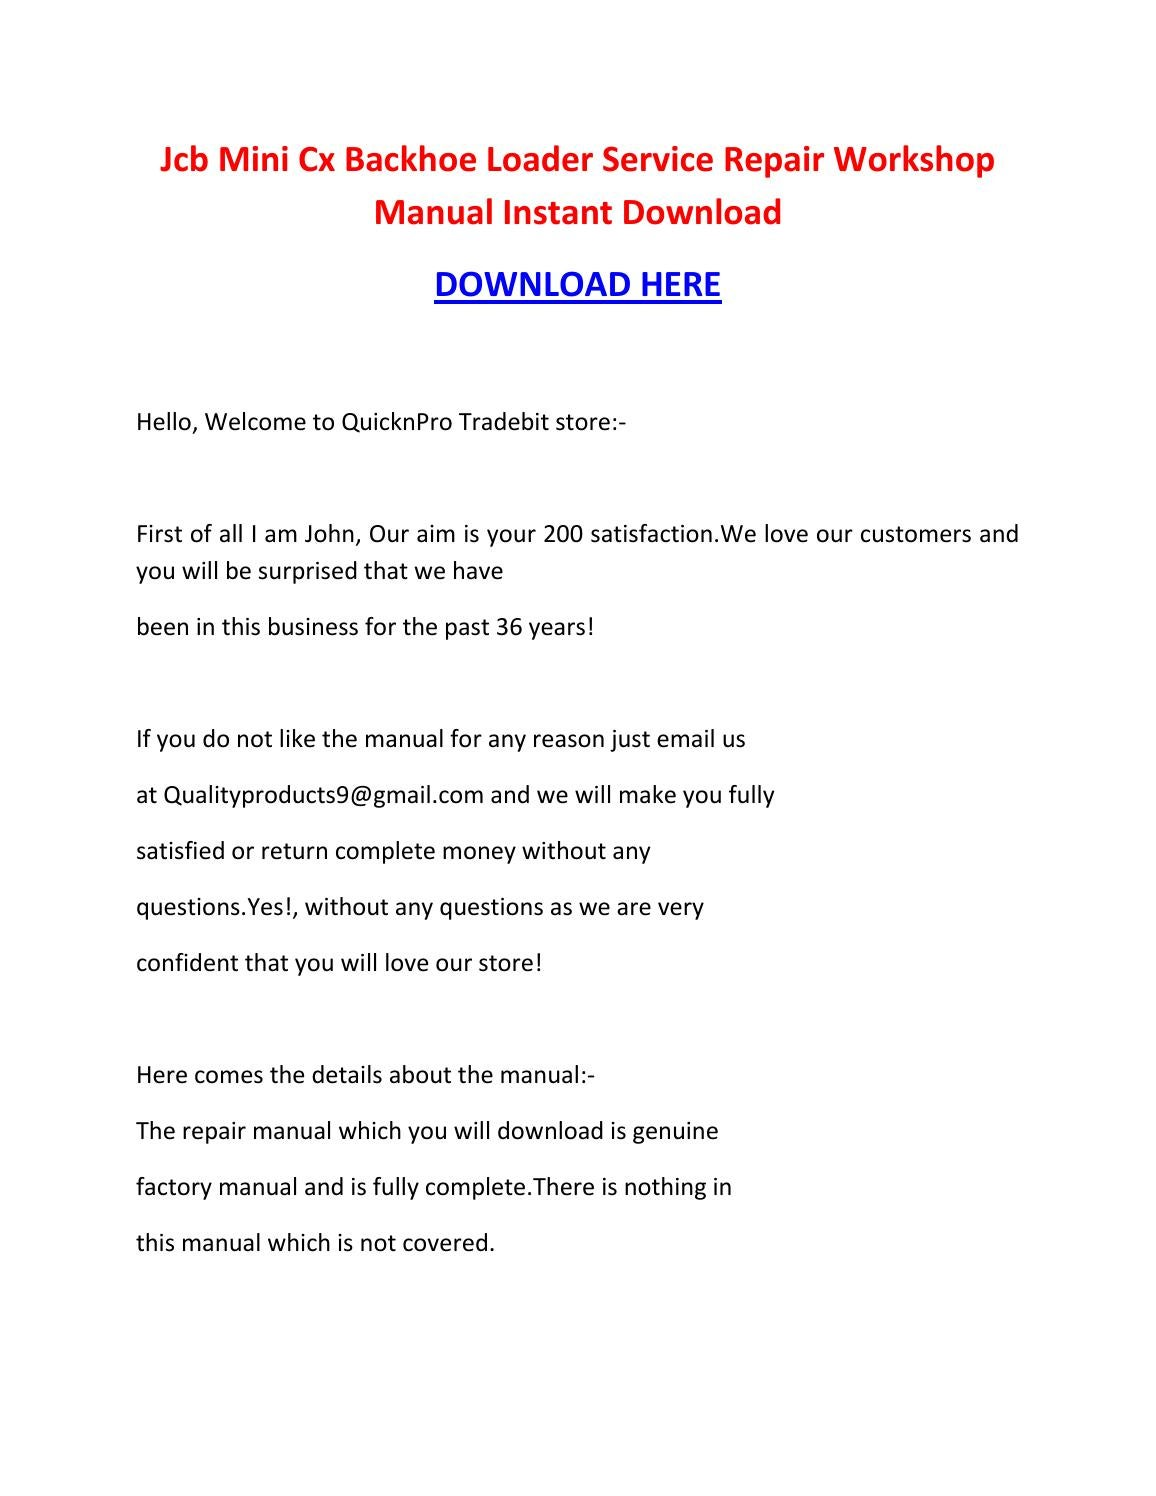 Jcb mini cx backhoe loader service repair workshop manual instant download  by brown jon - issuu